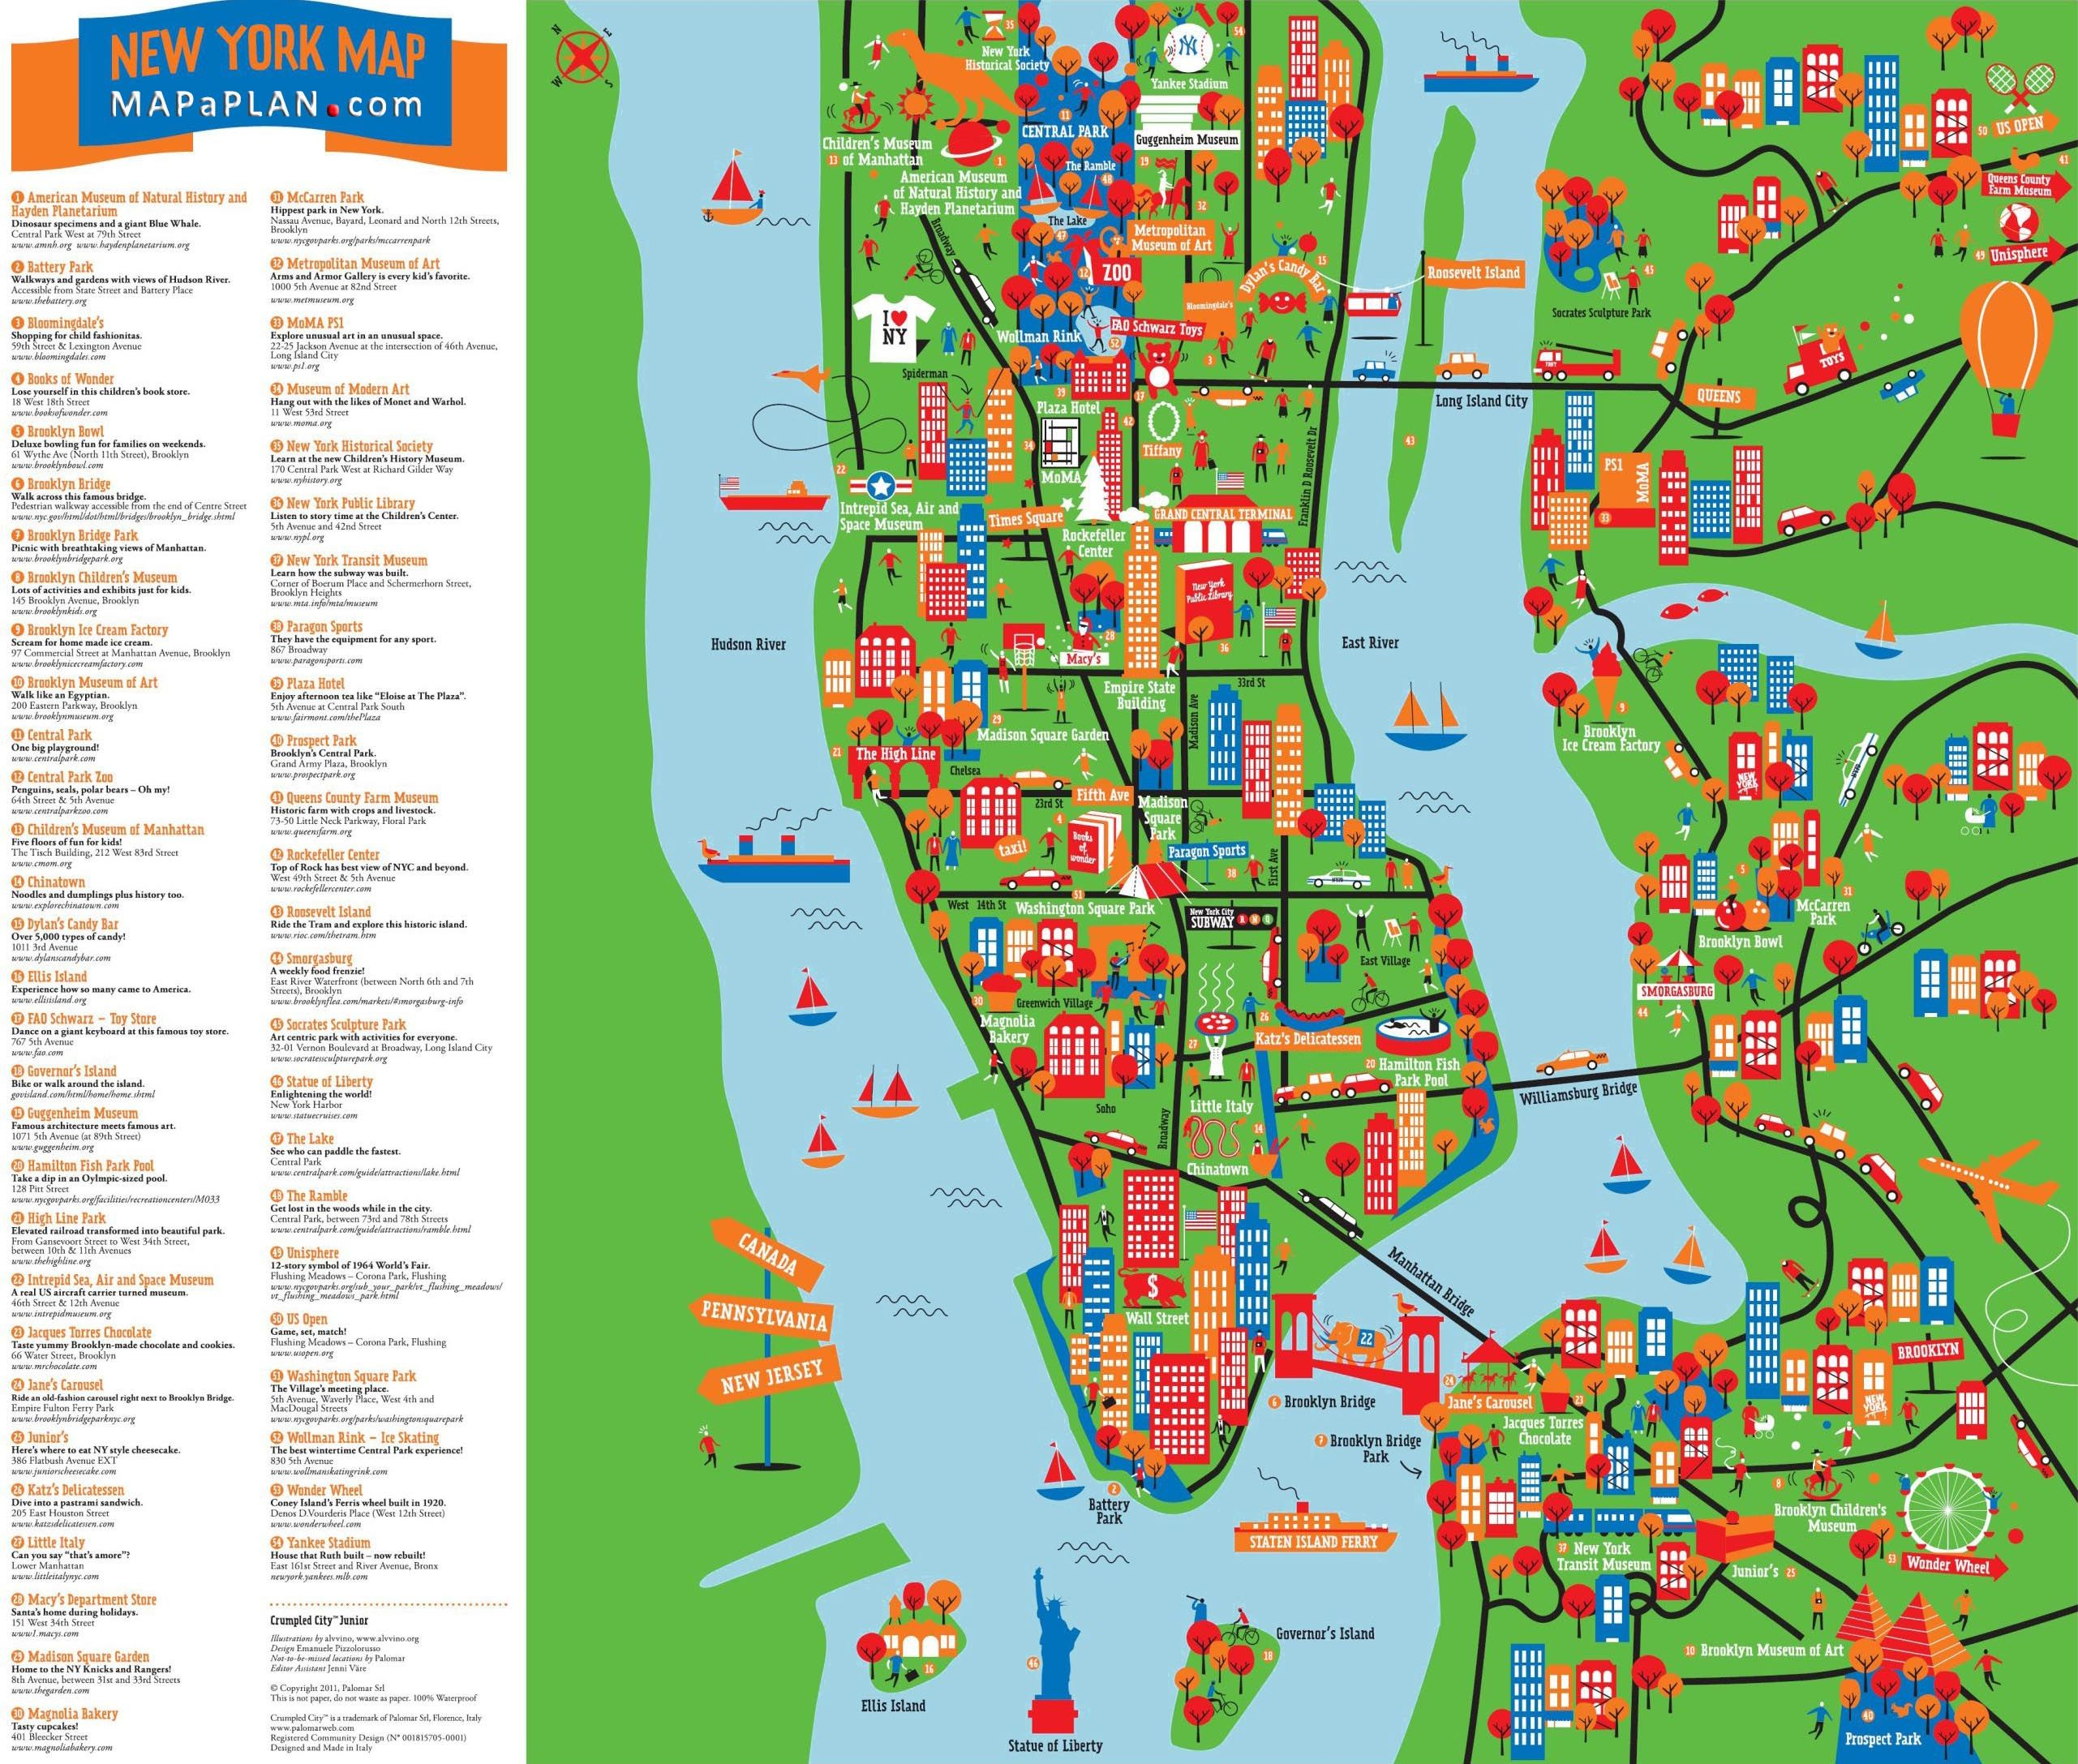 greatthingstodowithkidschildreninteractivecolorfulnew – Cape May Tourist Map